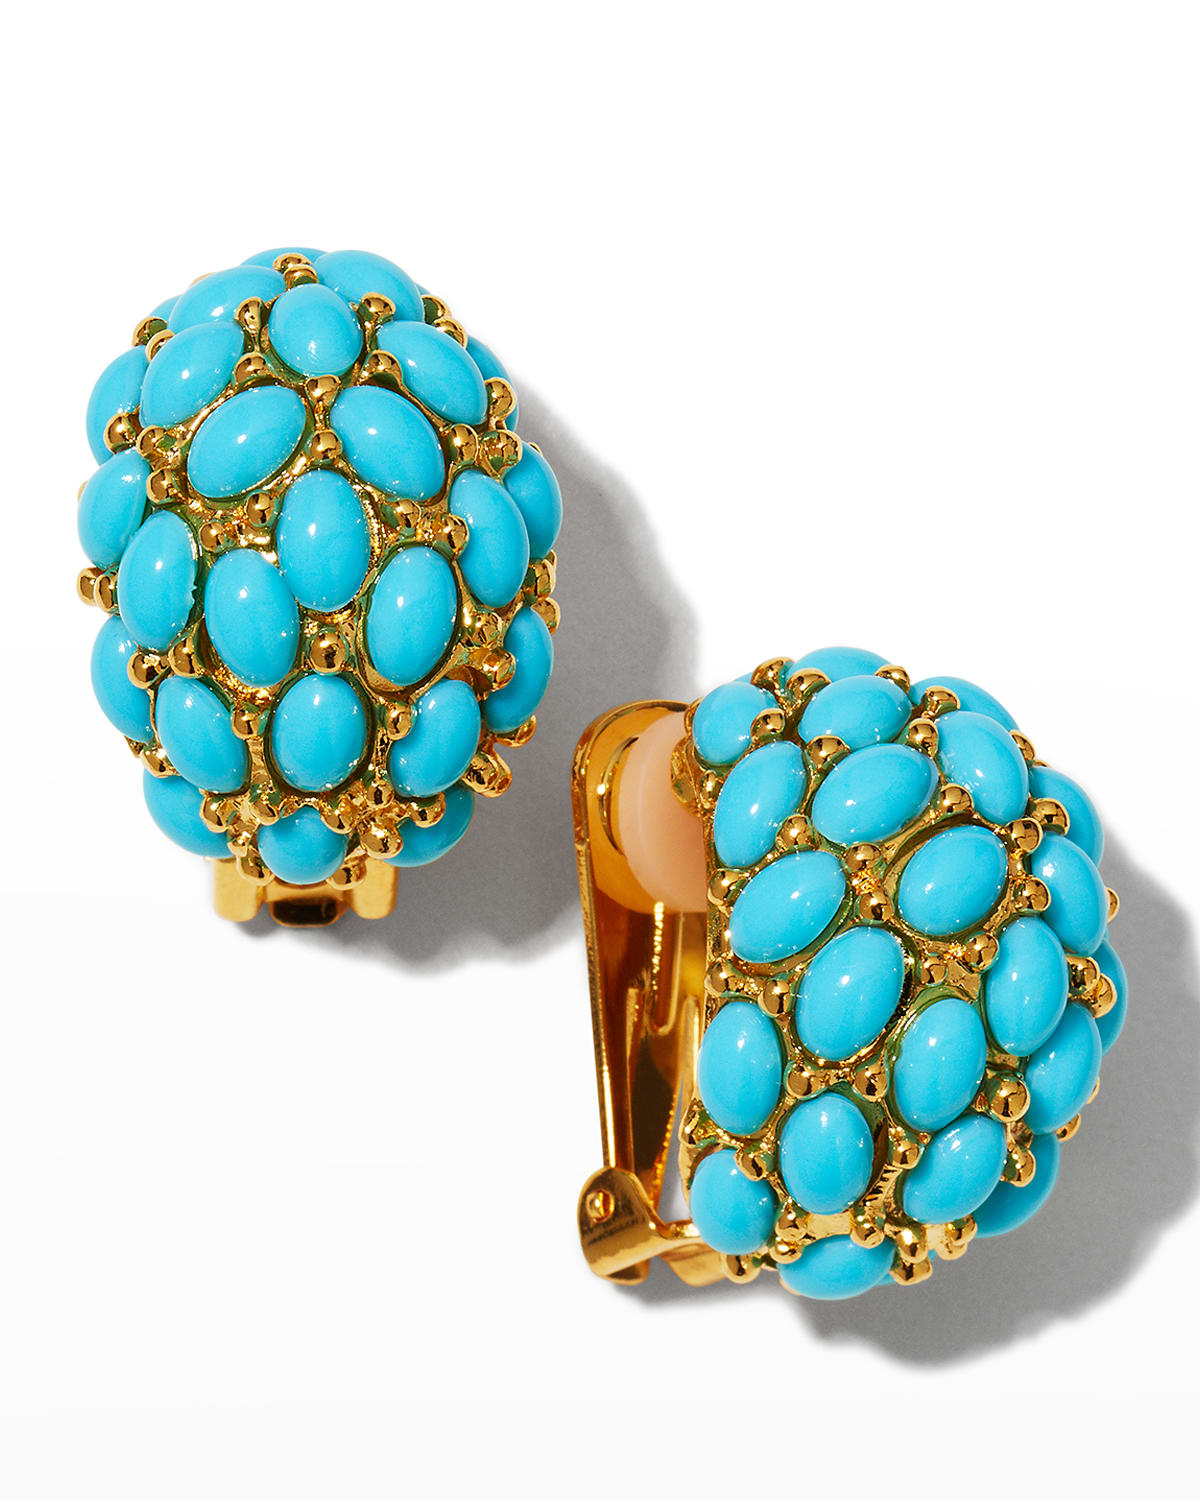 Gold and Turquoise Cabochons Domed Hoop Clip Earrings